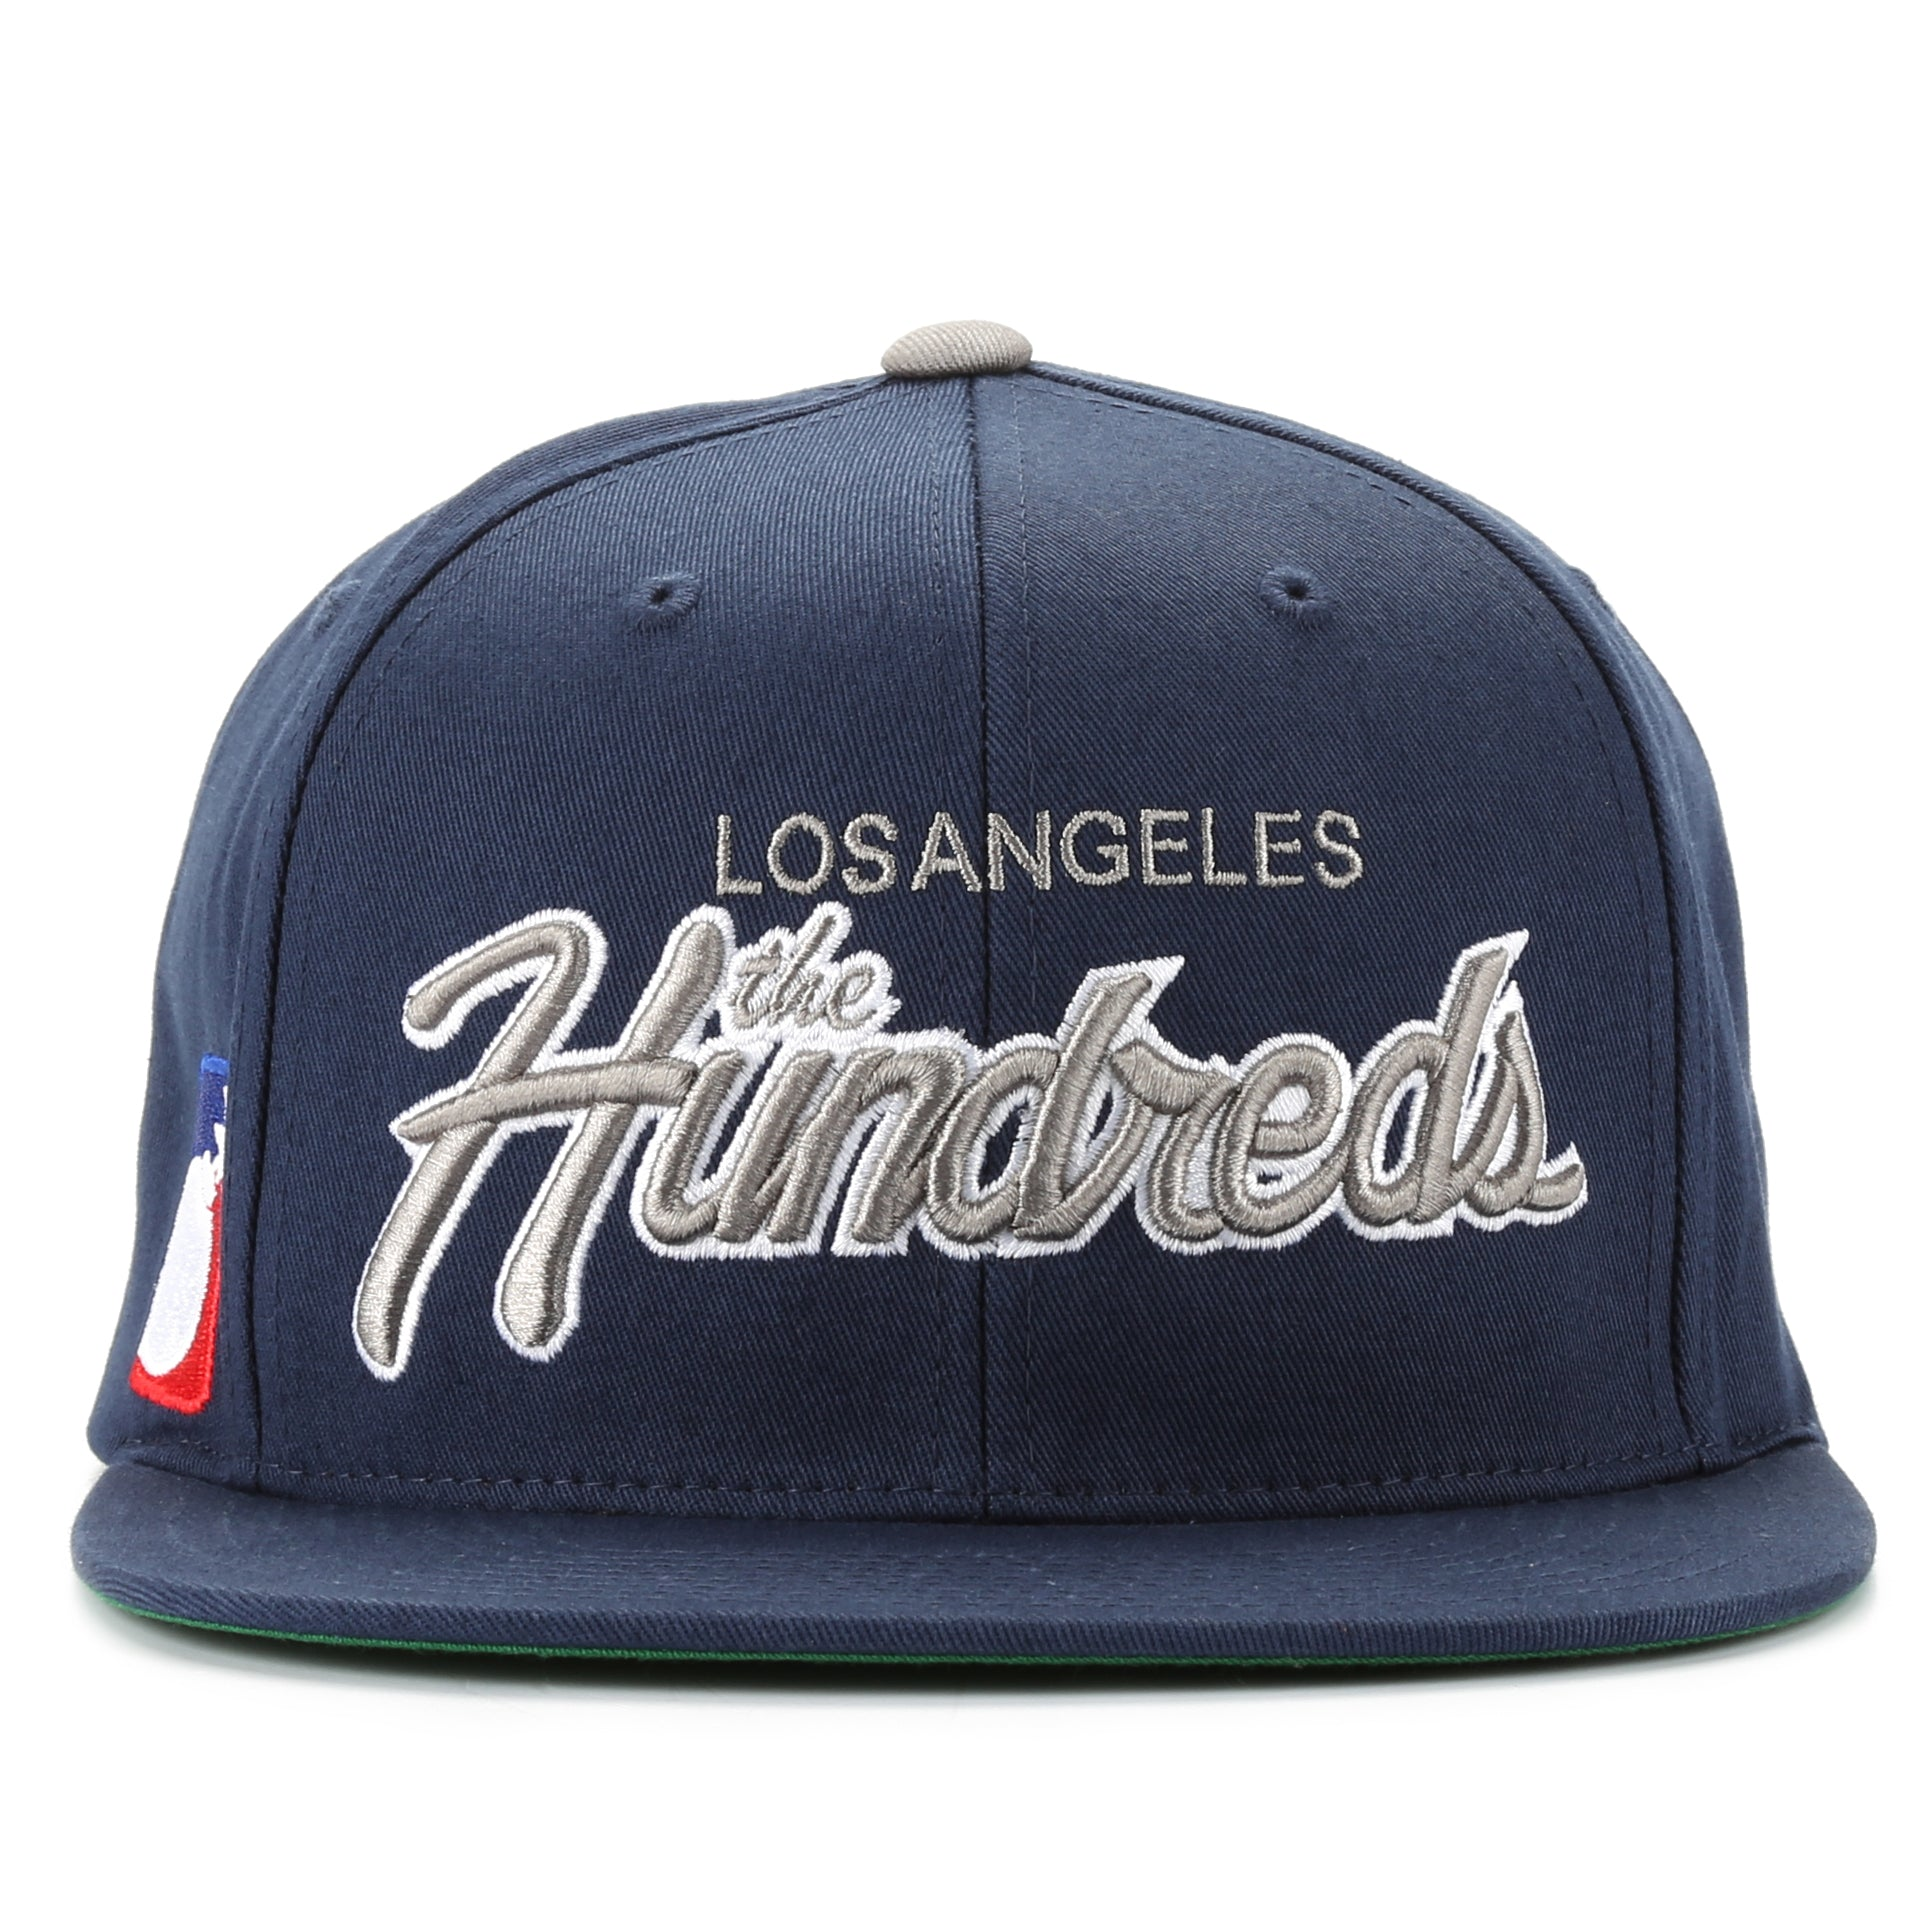 1a9ada813dd The Hundreds Team Two Snapback - Navy - New Star